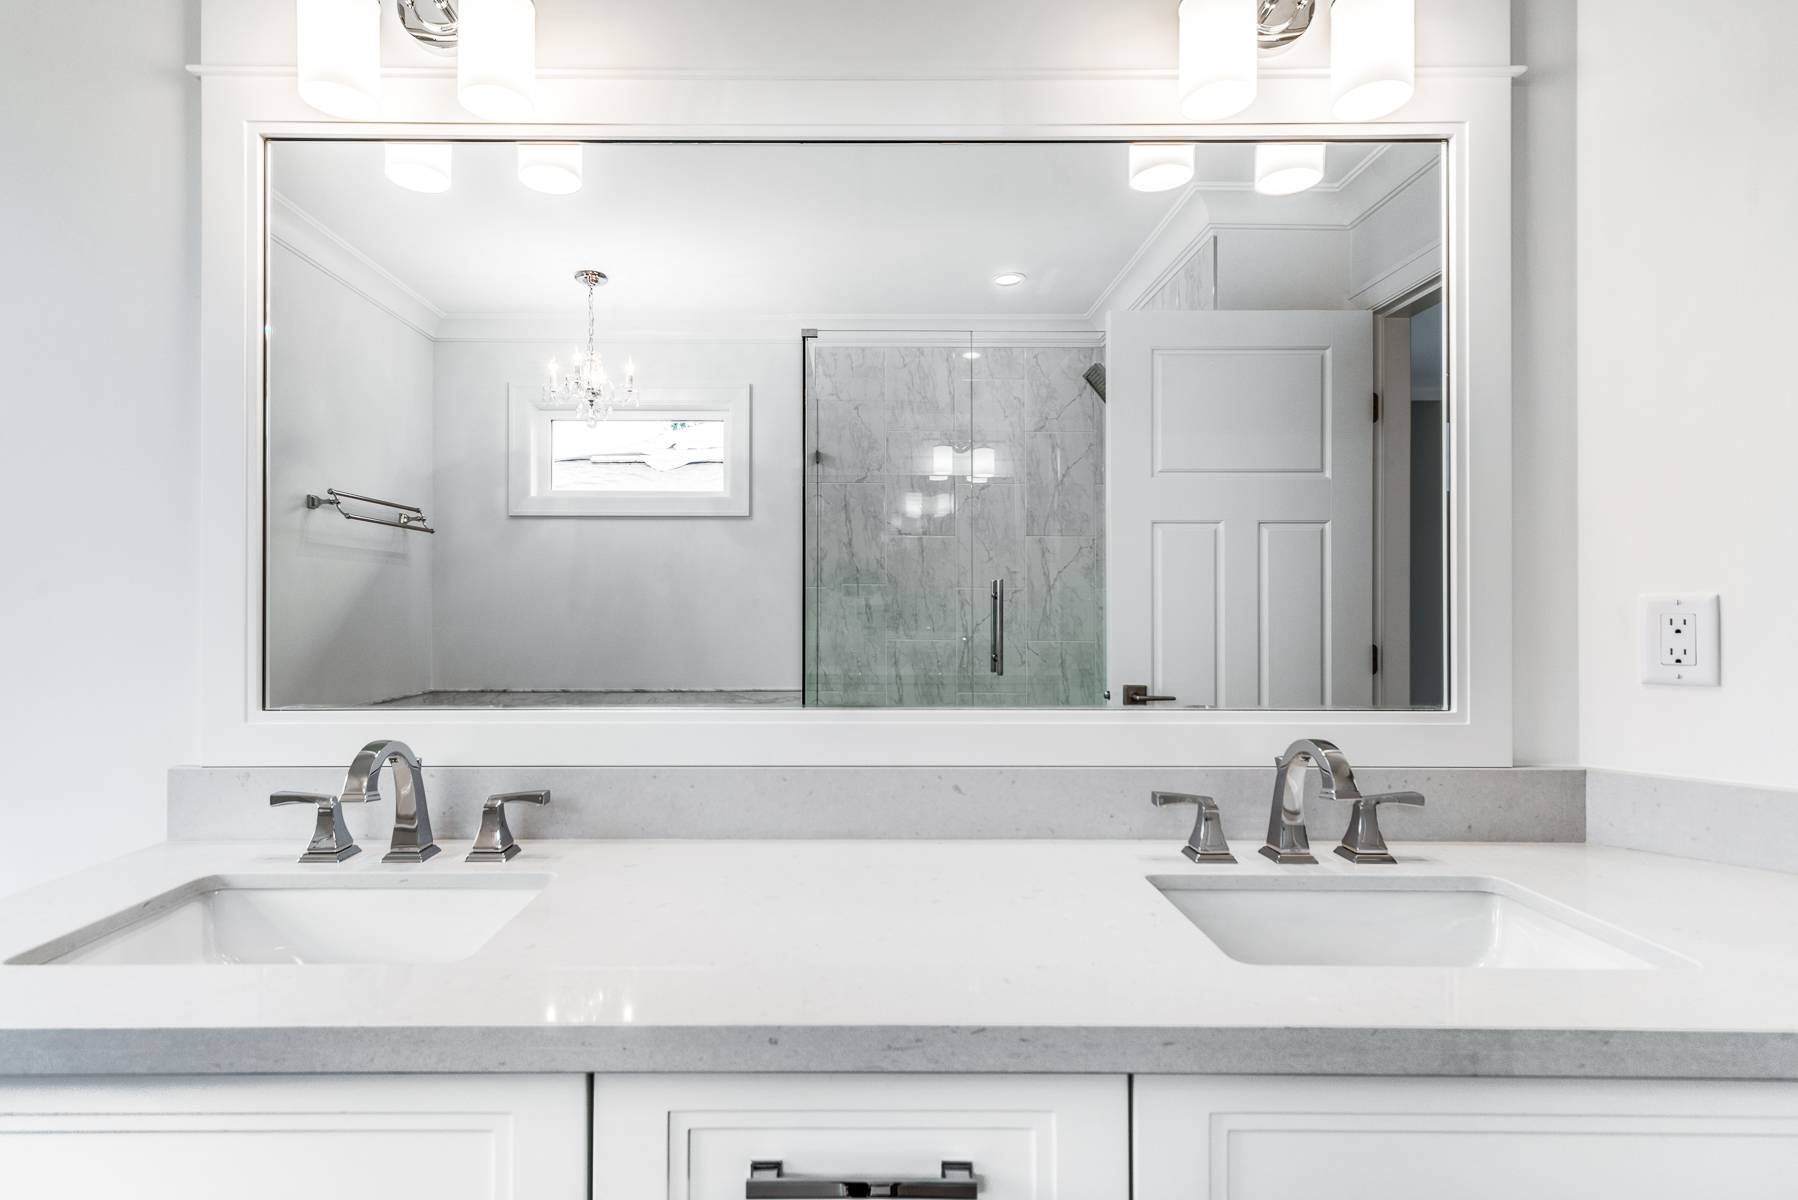 15592-Madrona-Dr-Sry-360hometours-23s.jpg